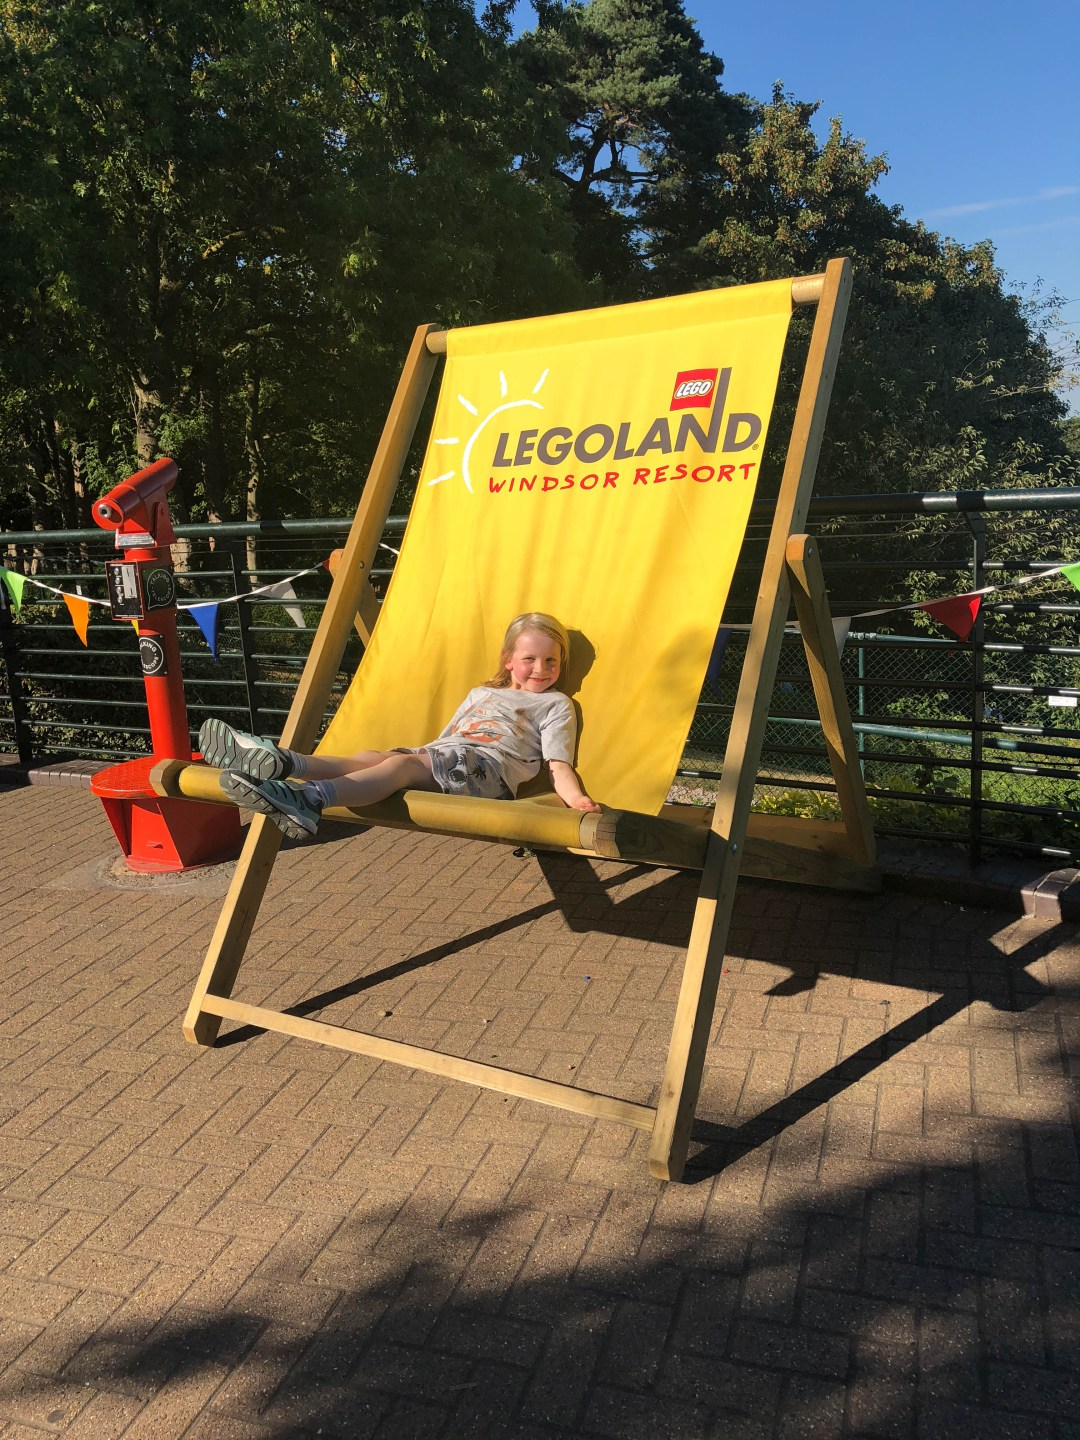 Keeping the kids busy at Legoland Windsor